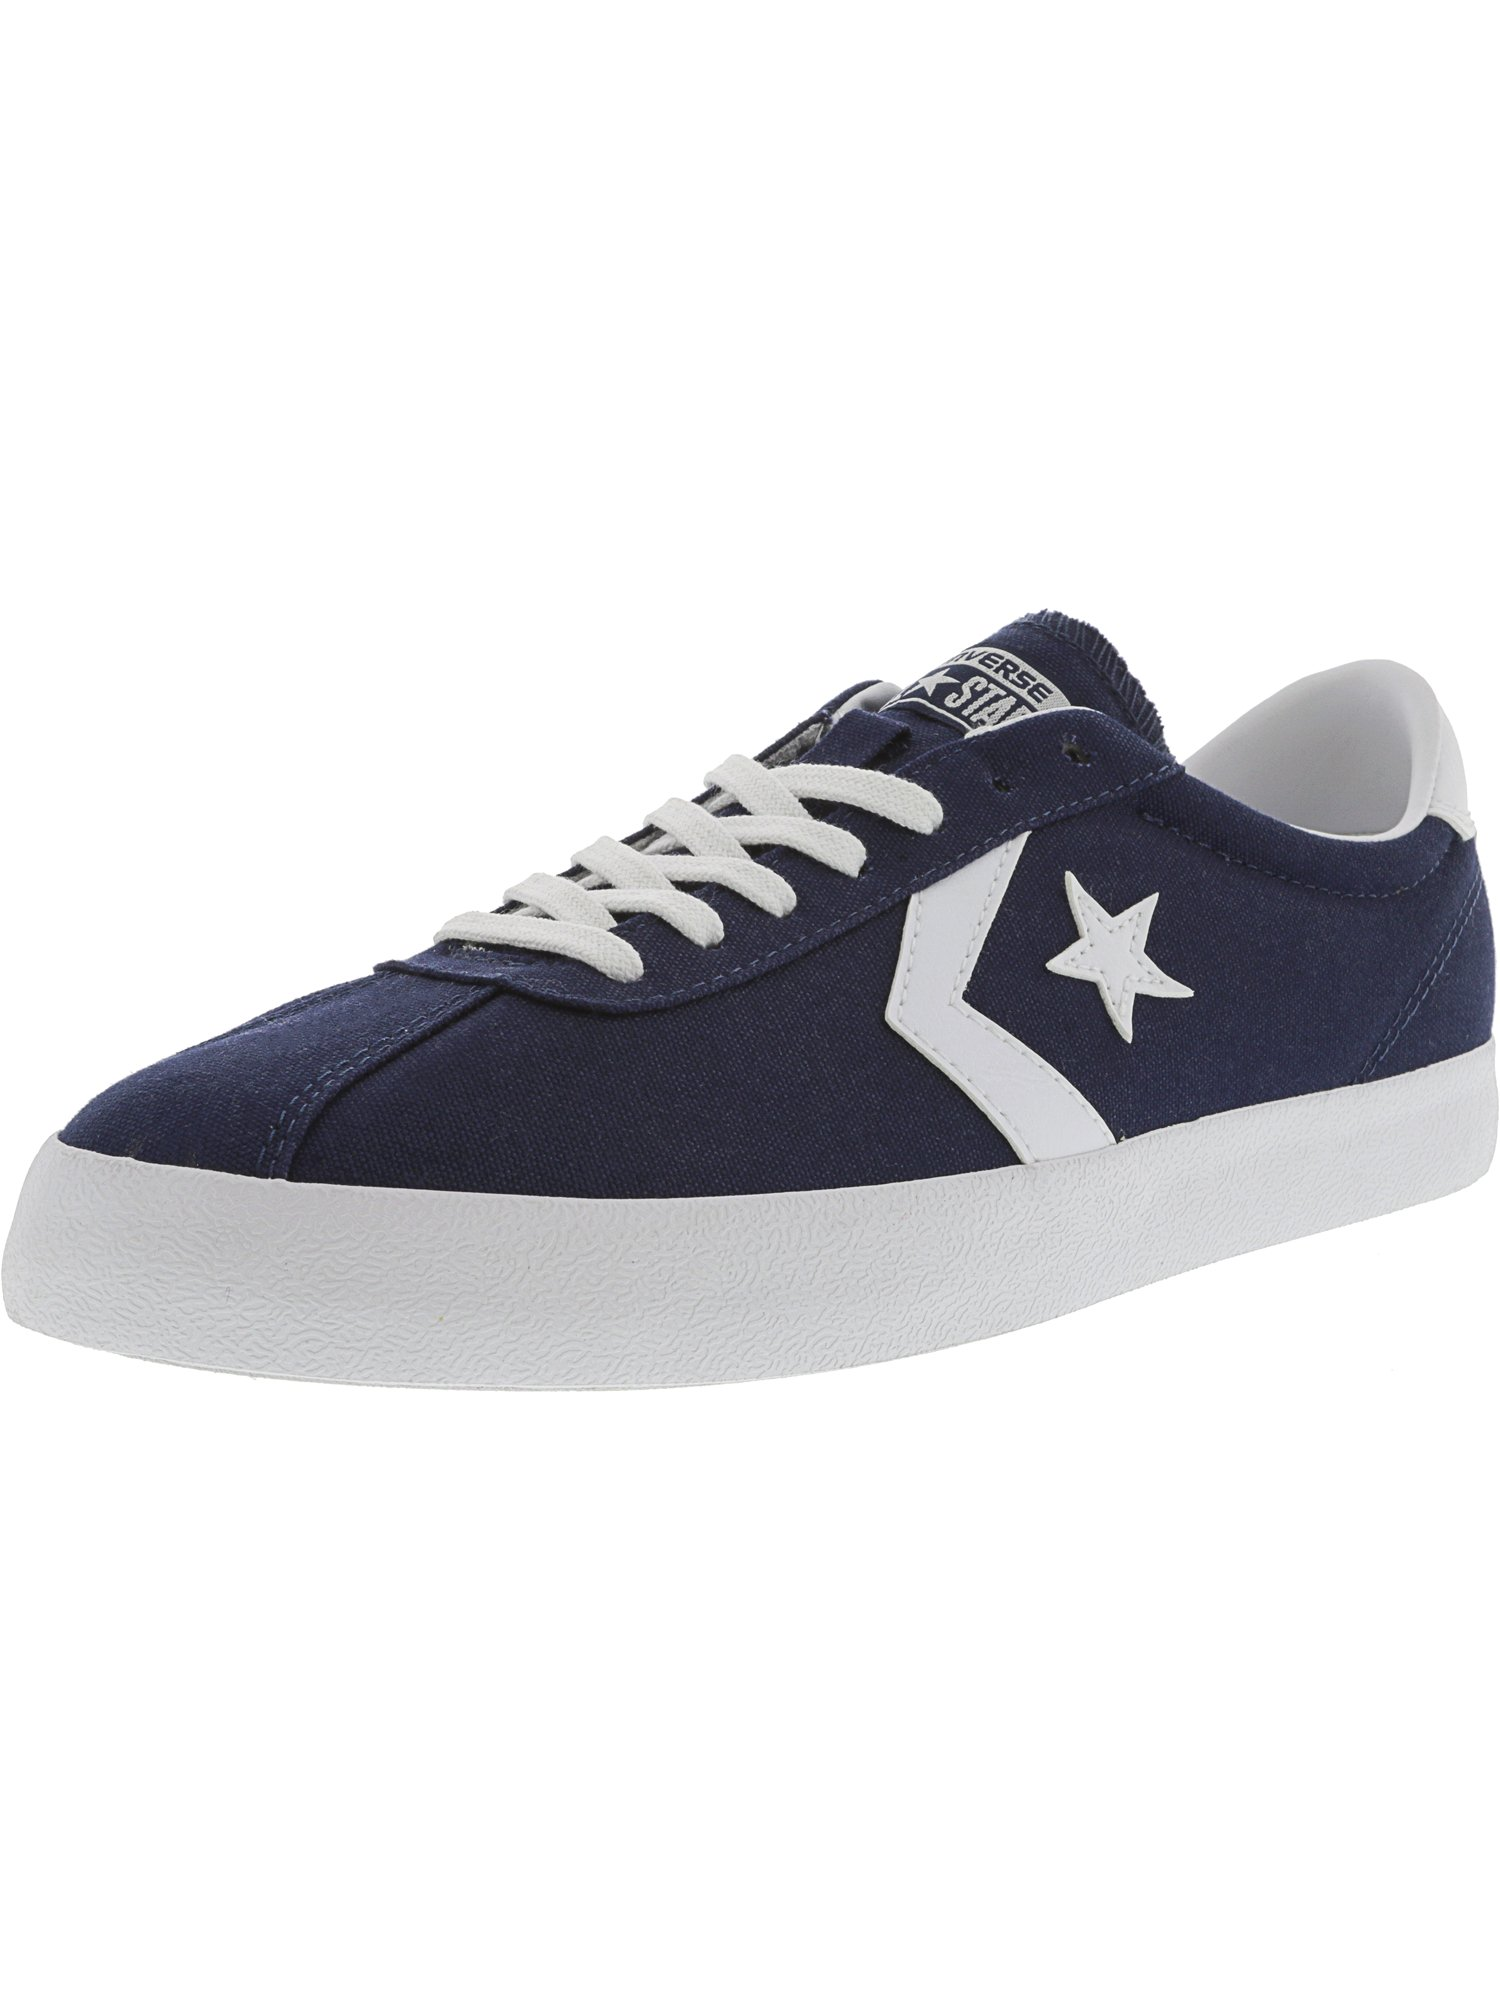 Converse Breakpoint Ox Midnight Navy   White Ankle-High Fashion Sneaker 9.5M 8M by Converse